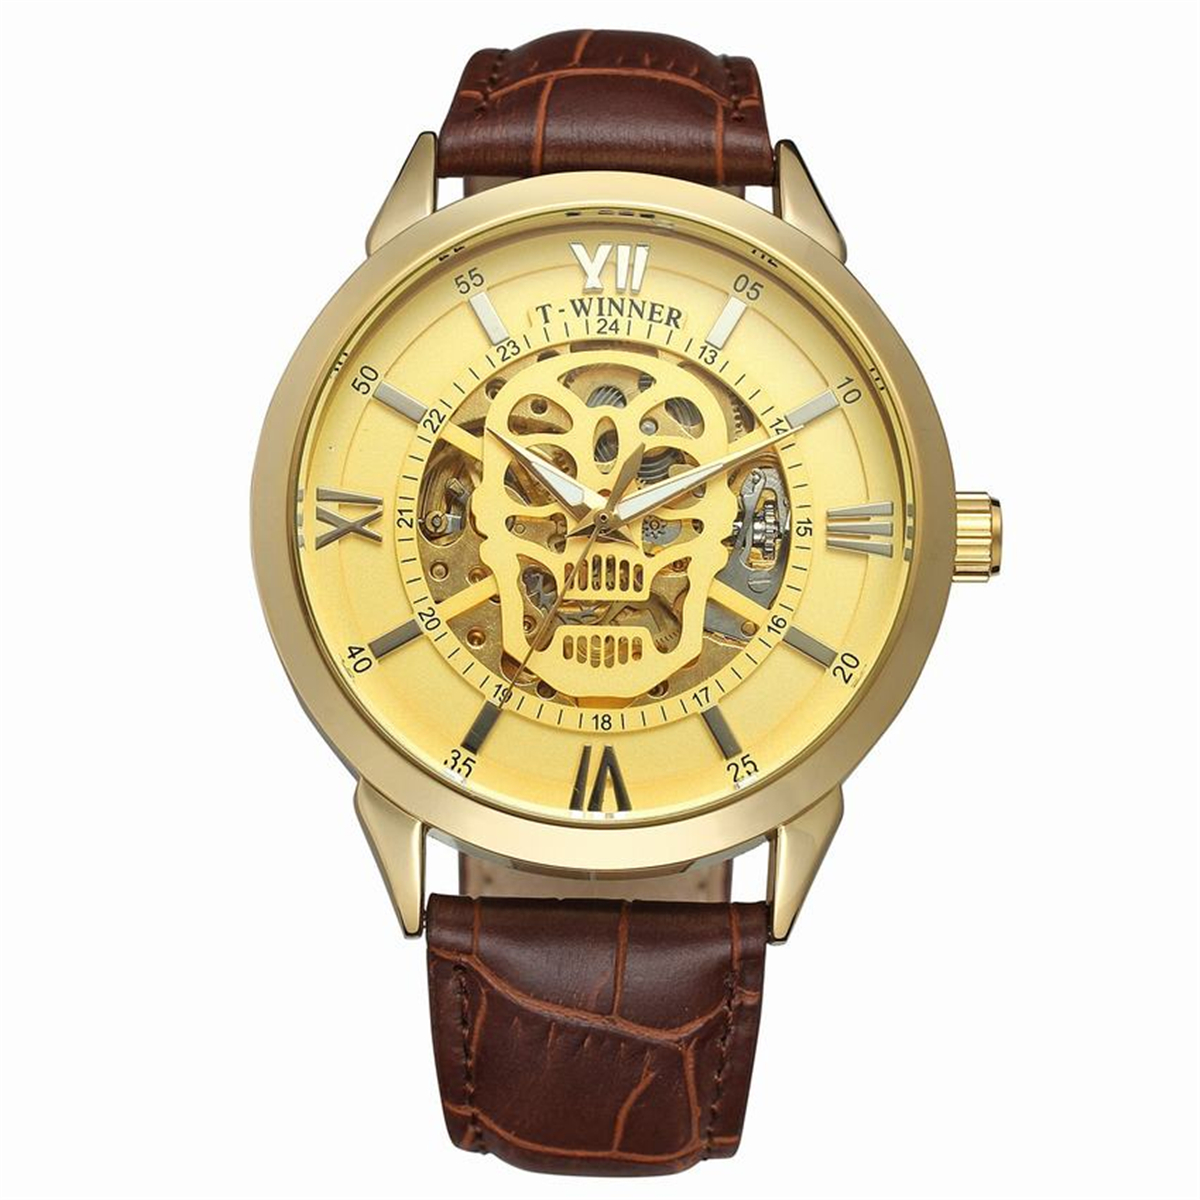 WINNER Automatic Mechanical Watches 3D Logo Mens Gold Luxury Wrist Watch Men Military Sport Skeleton Clock Business Clocks t winner automatic mechanical watches fashion luxury gear shape silver skeleton dial wrist watch men noble casual clock leather